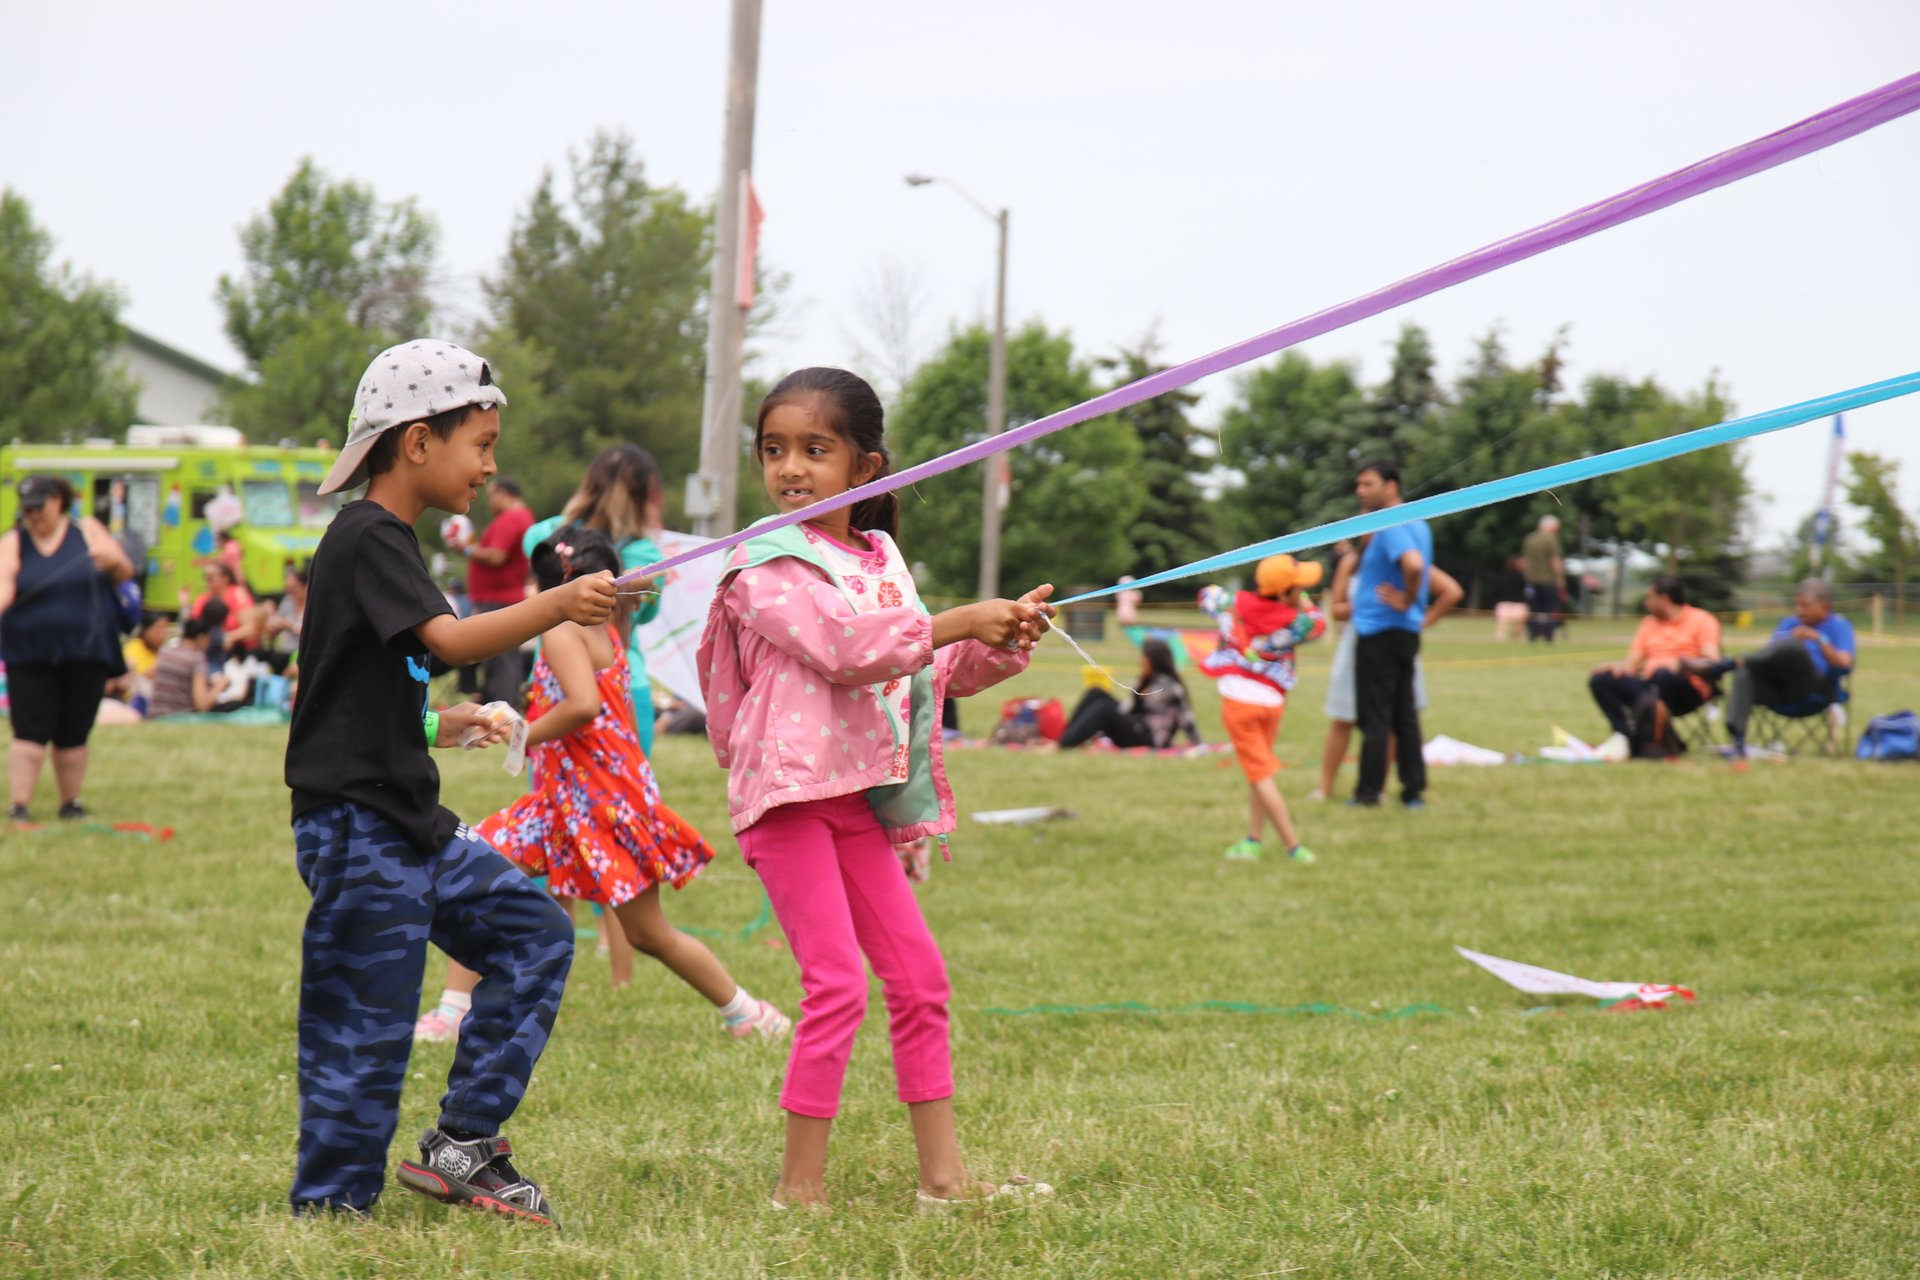 Brampton Kite Fest in Toronto - Best Season 2020